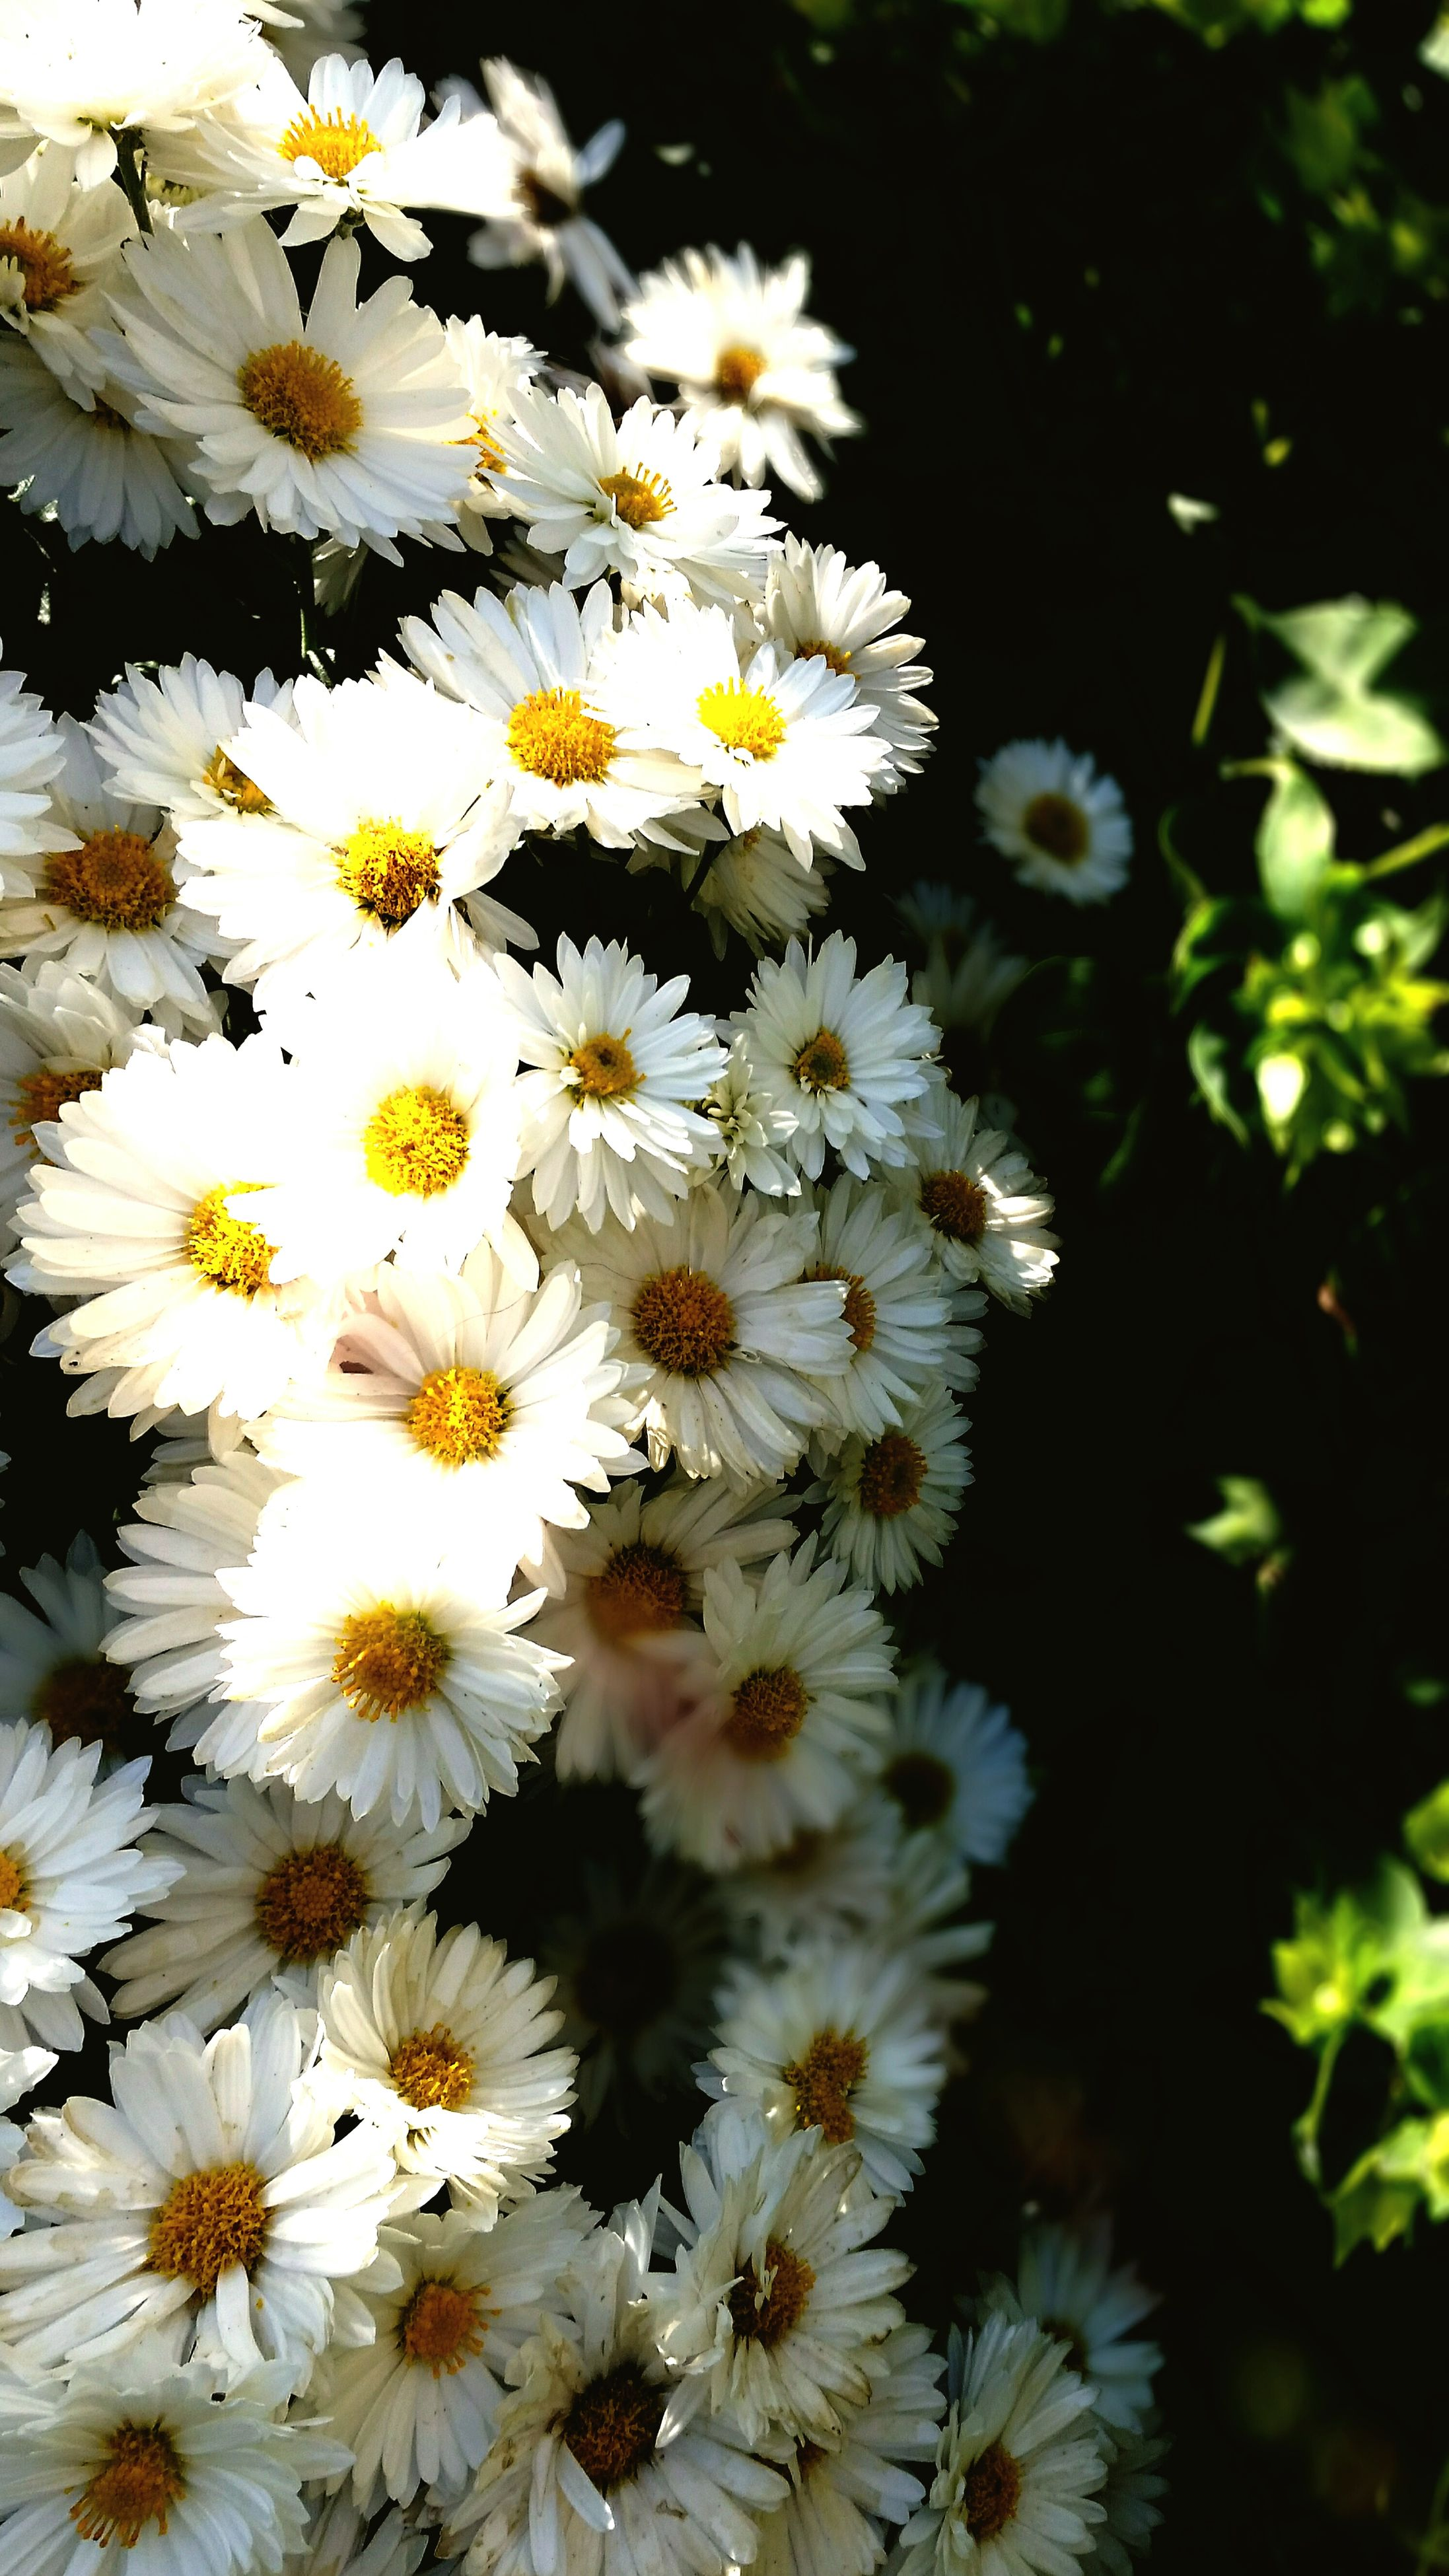 flower, freshness, white color, fragility, petal, growth, beauty in nature, flower head, blooming, nature, blossom, pollen, white, in bloom, high angle view, abundance, full frame, close-up, plant, daisy